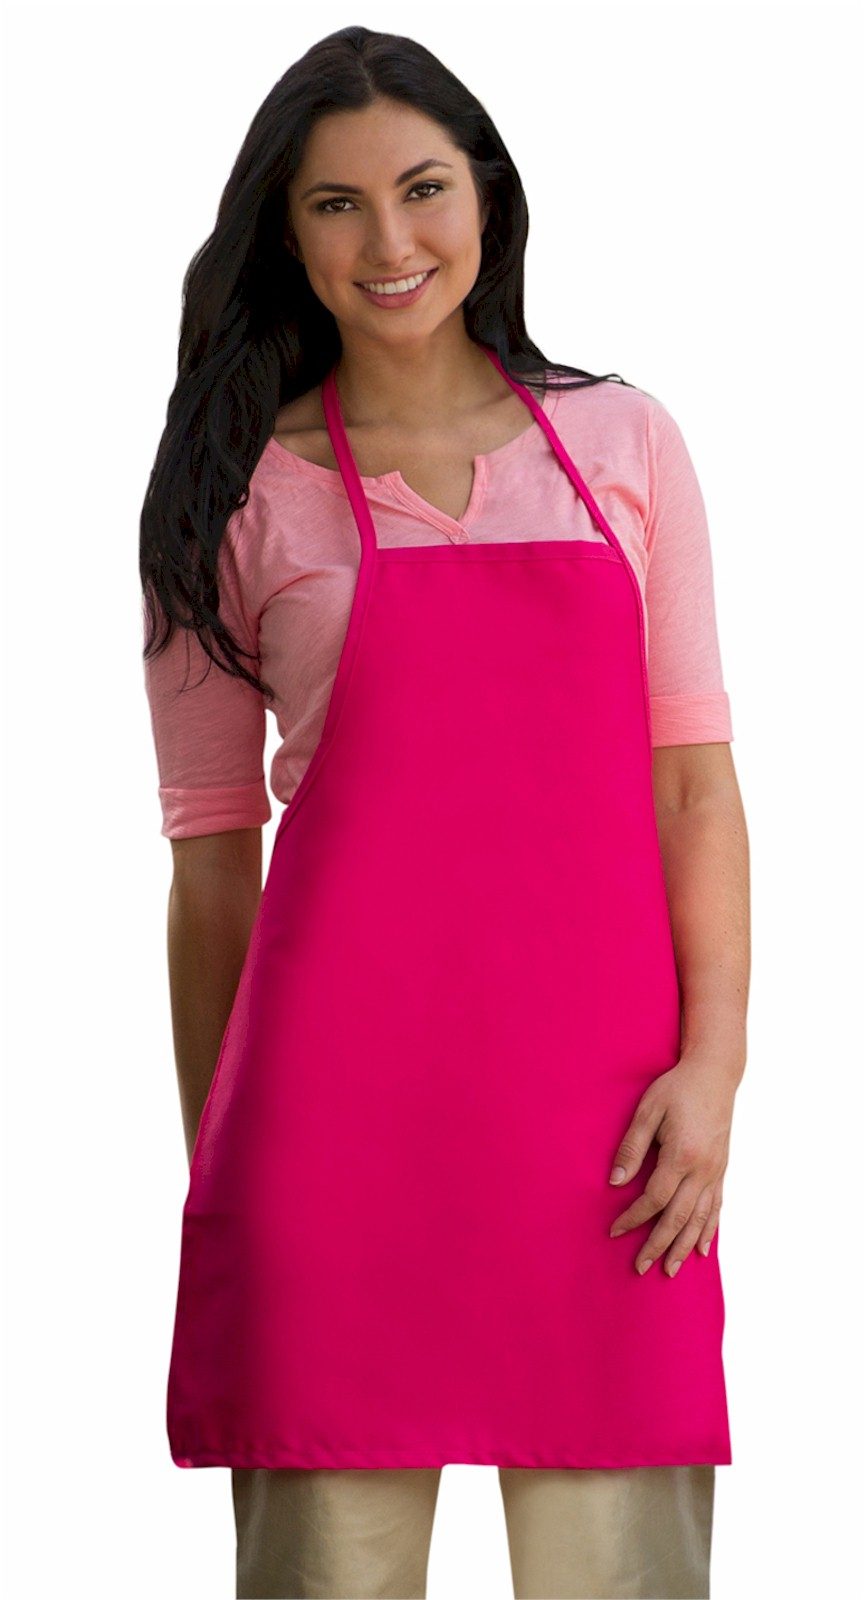 Style 205 Professional Small No Pocket Cover-Up Bib Apron